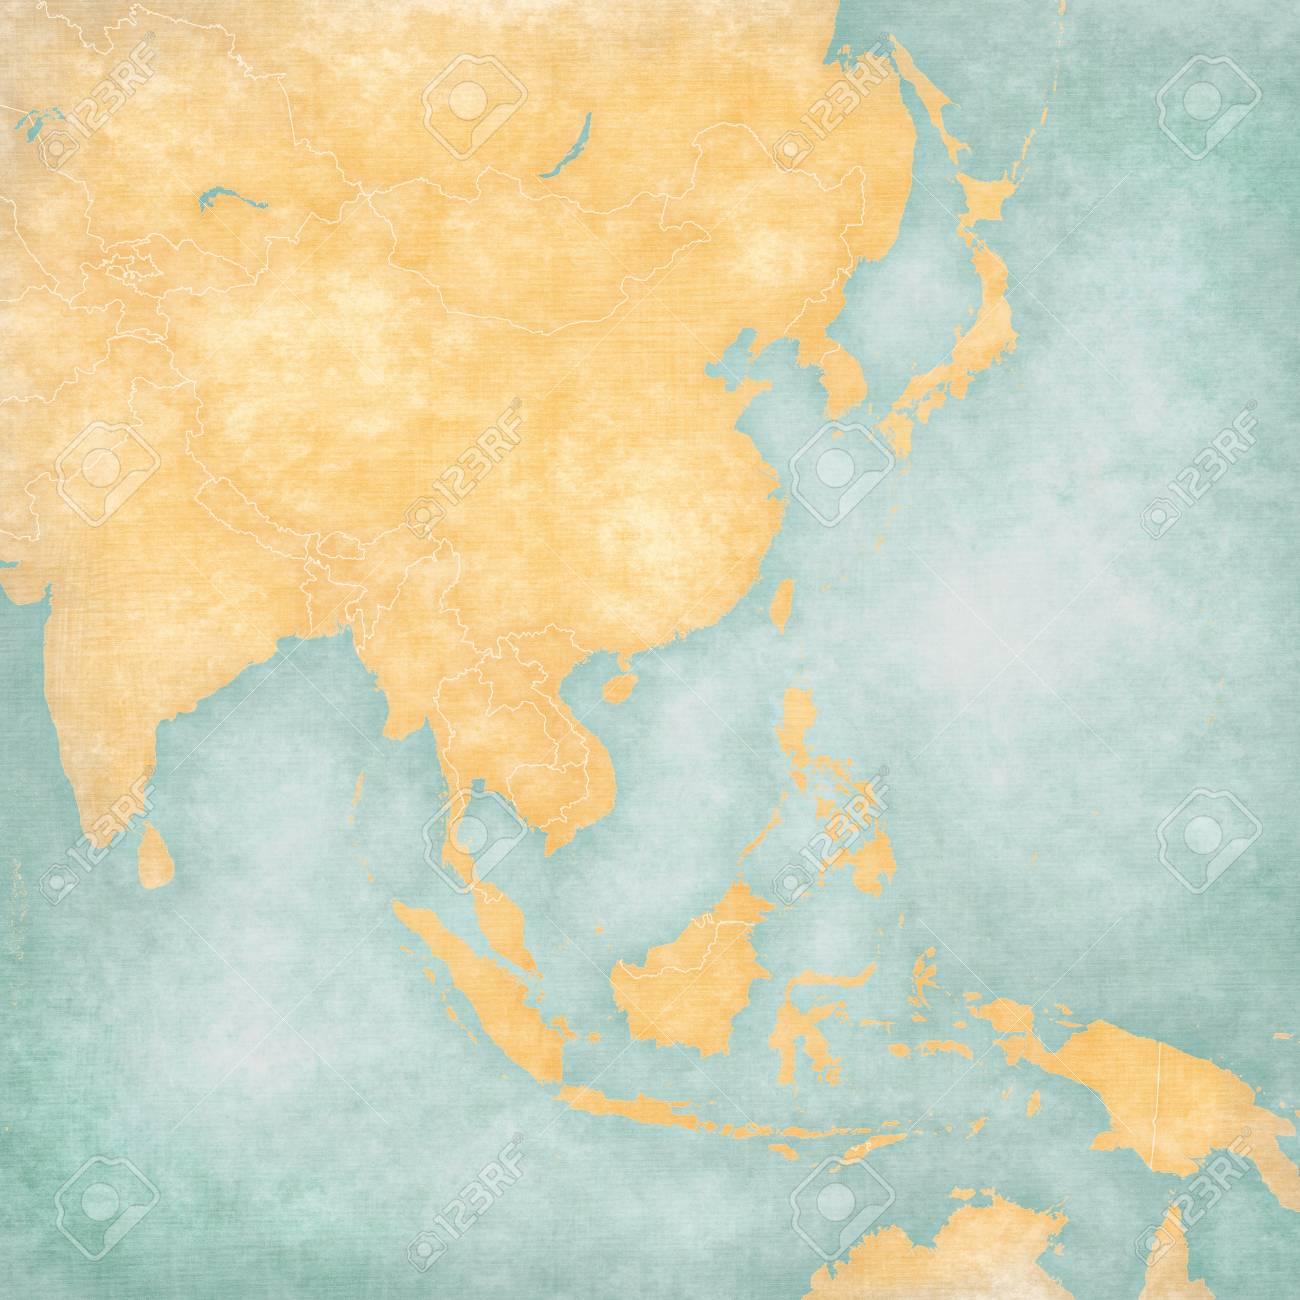 Blank Map Of East And Southeast Asia.Blank Map Of East And Southeast Asia With Country Borders In